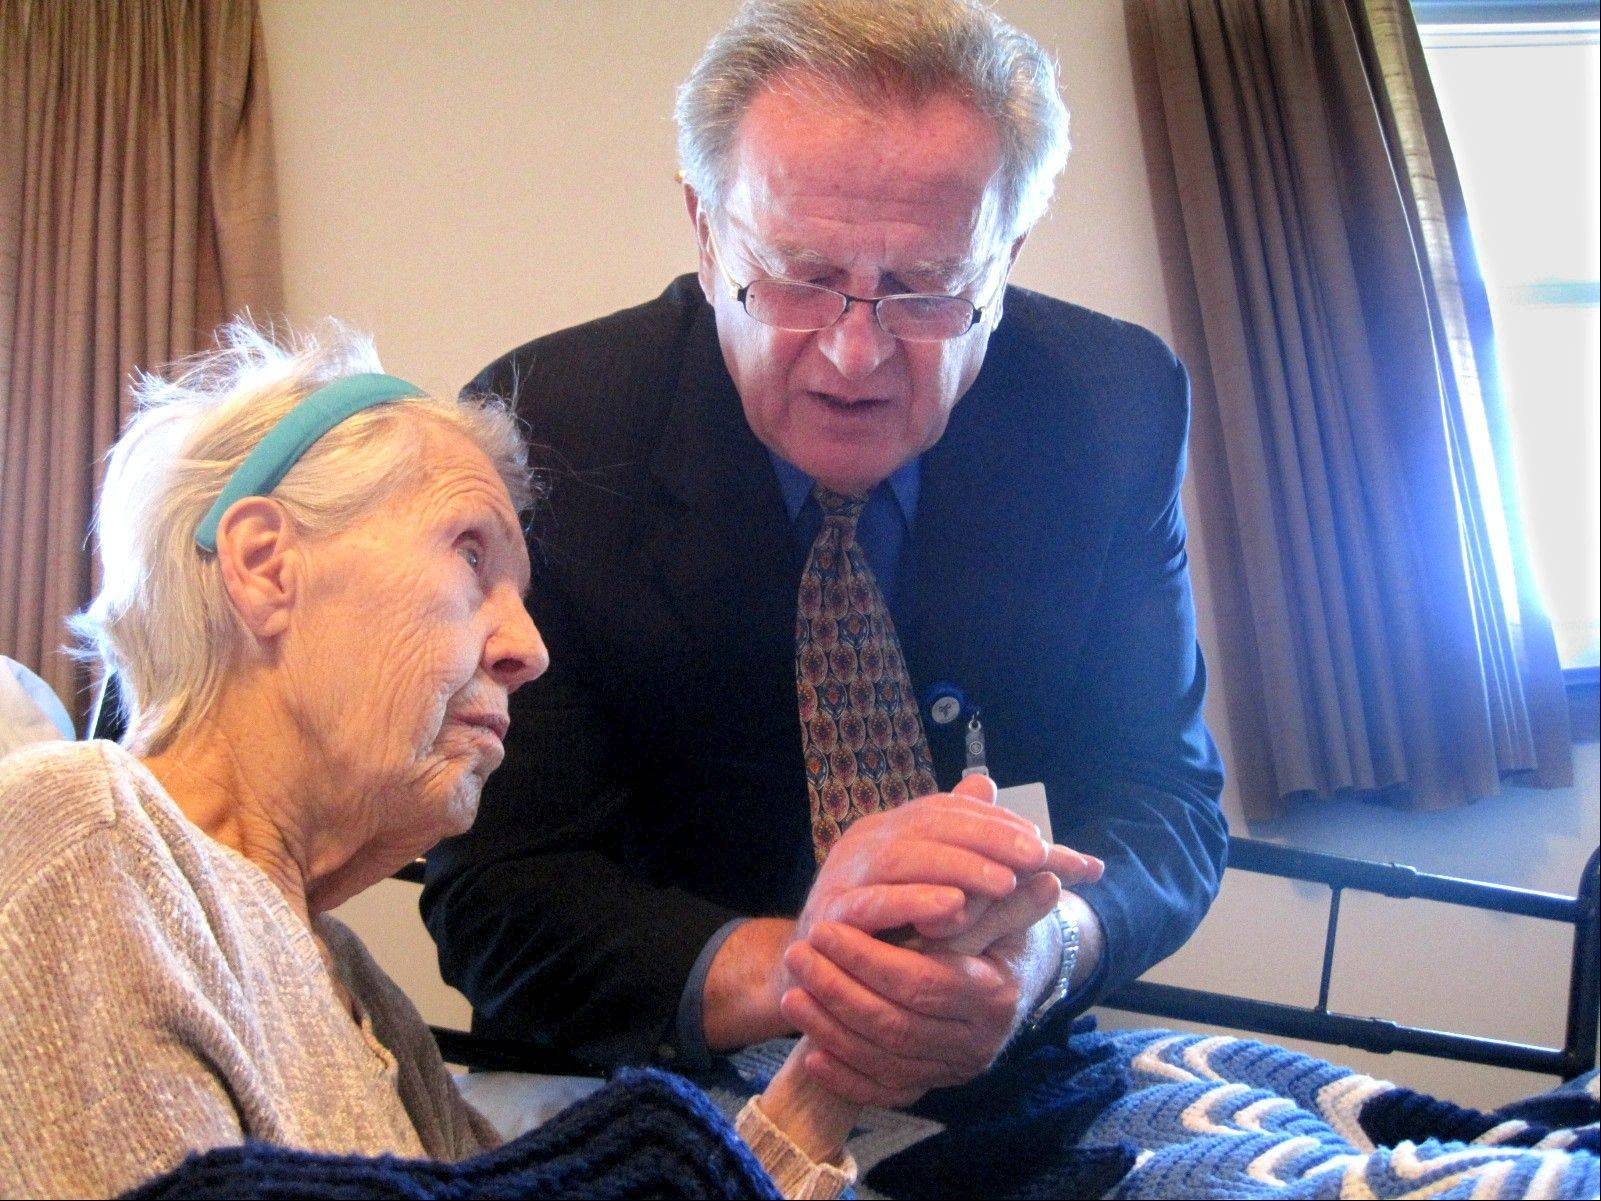 Chaplain Branislav Dedic of Bartlett counsels Helen Bukovsky at her home in Westchester.